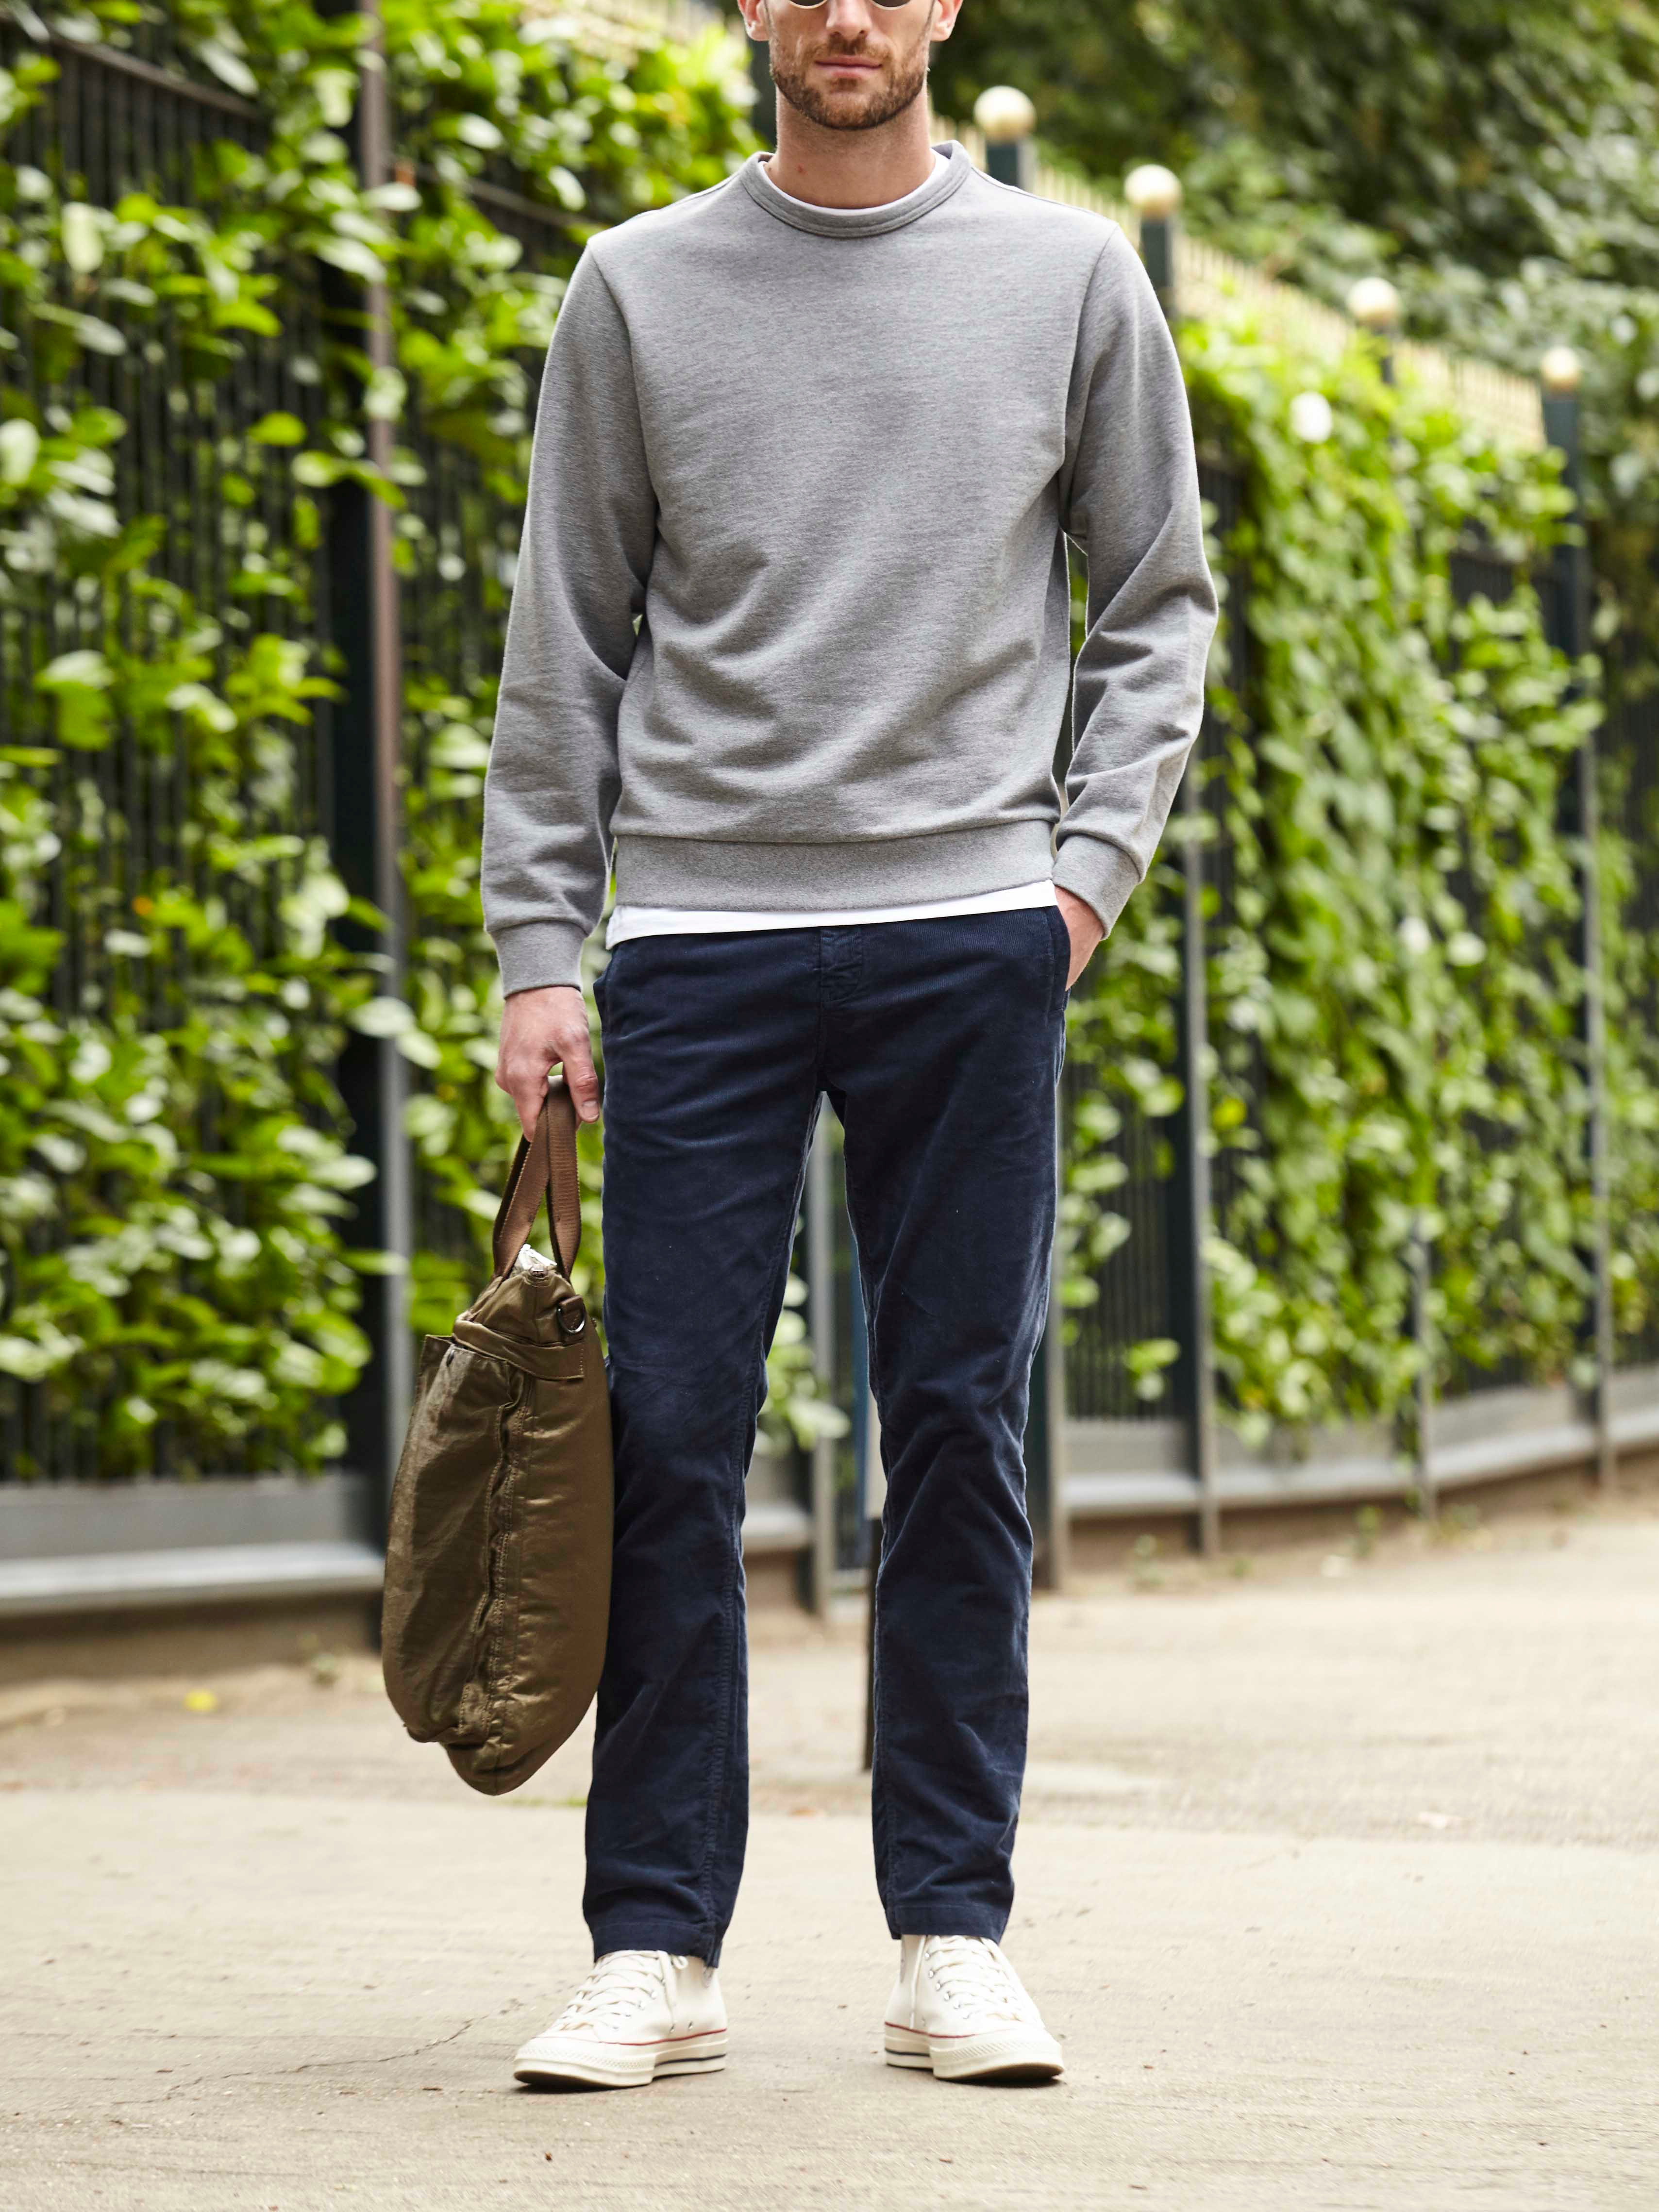 Men's outfit idea for 2021 with gray sweatshirt, white crew neck t-shirt, navy chinos, converse. Suitable for spring and fall.